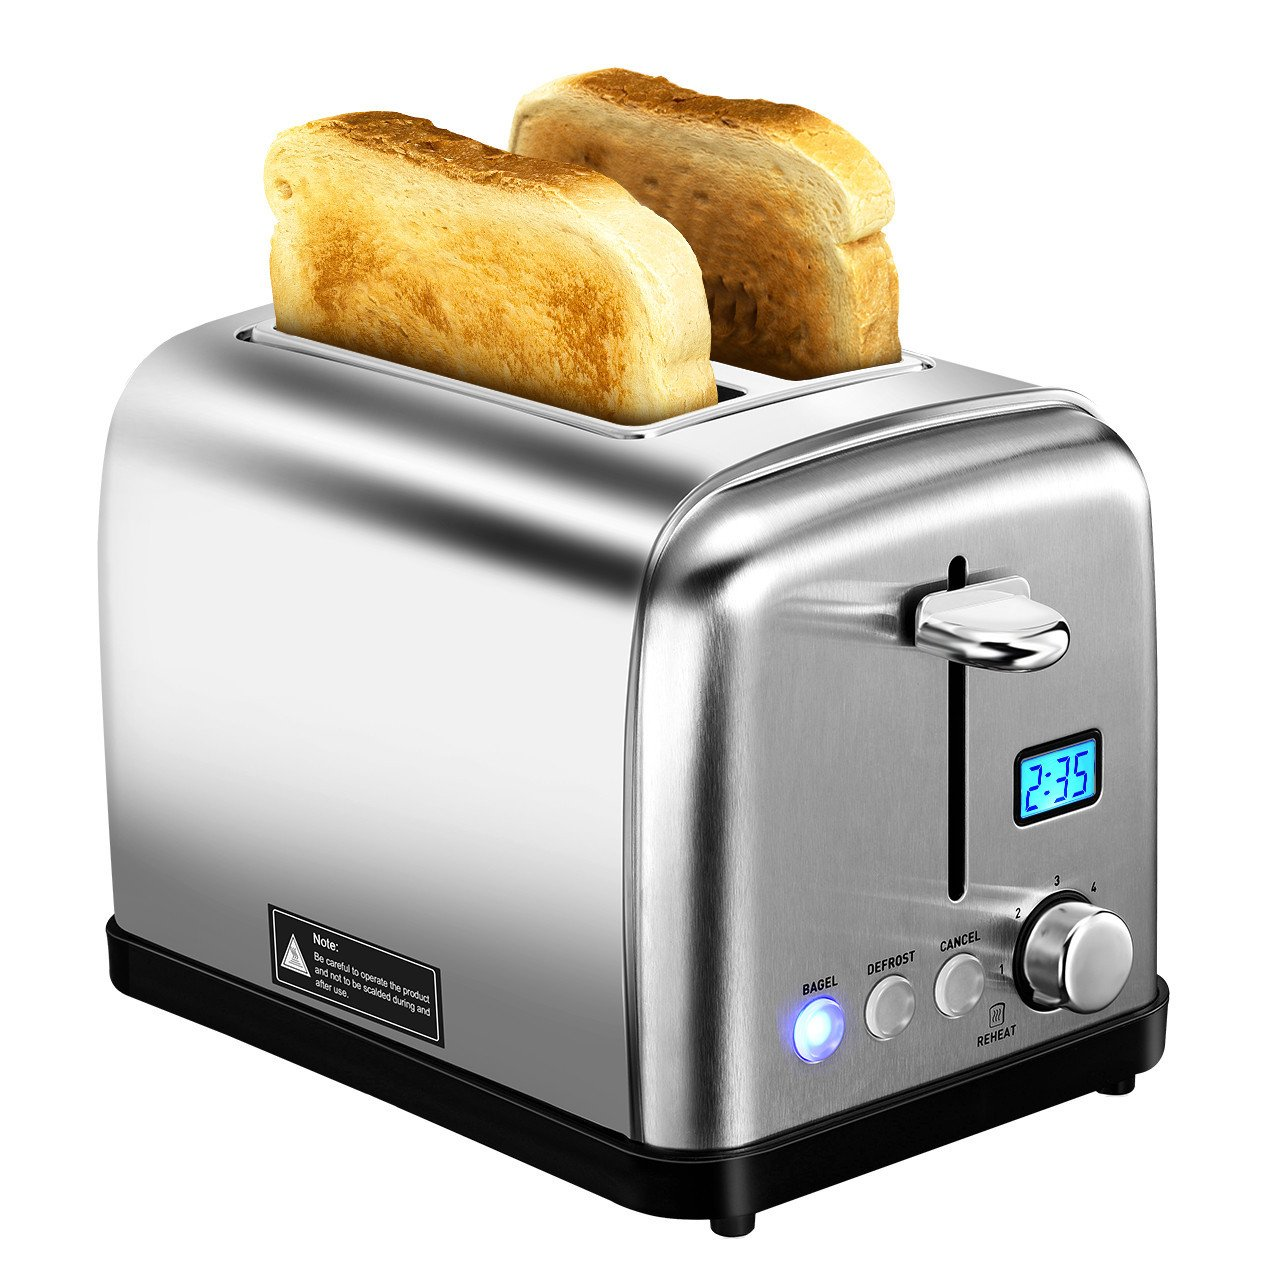 HoLife 2 Slice Toaster Stainless Steel with 6 Bread Shade Settings Bagel/Defrost/Reheat/Cancel Function, Extra Wide Slots, Removable Crumb Tray, 900W, Silver